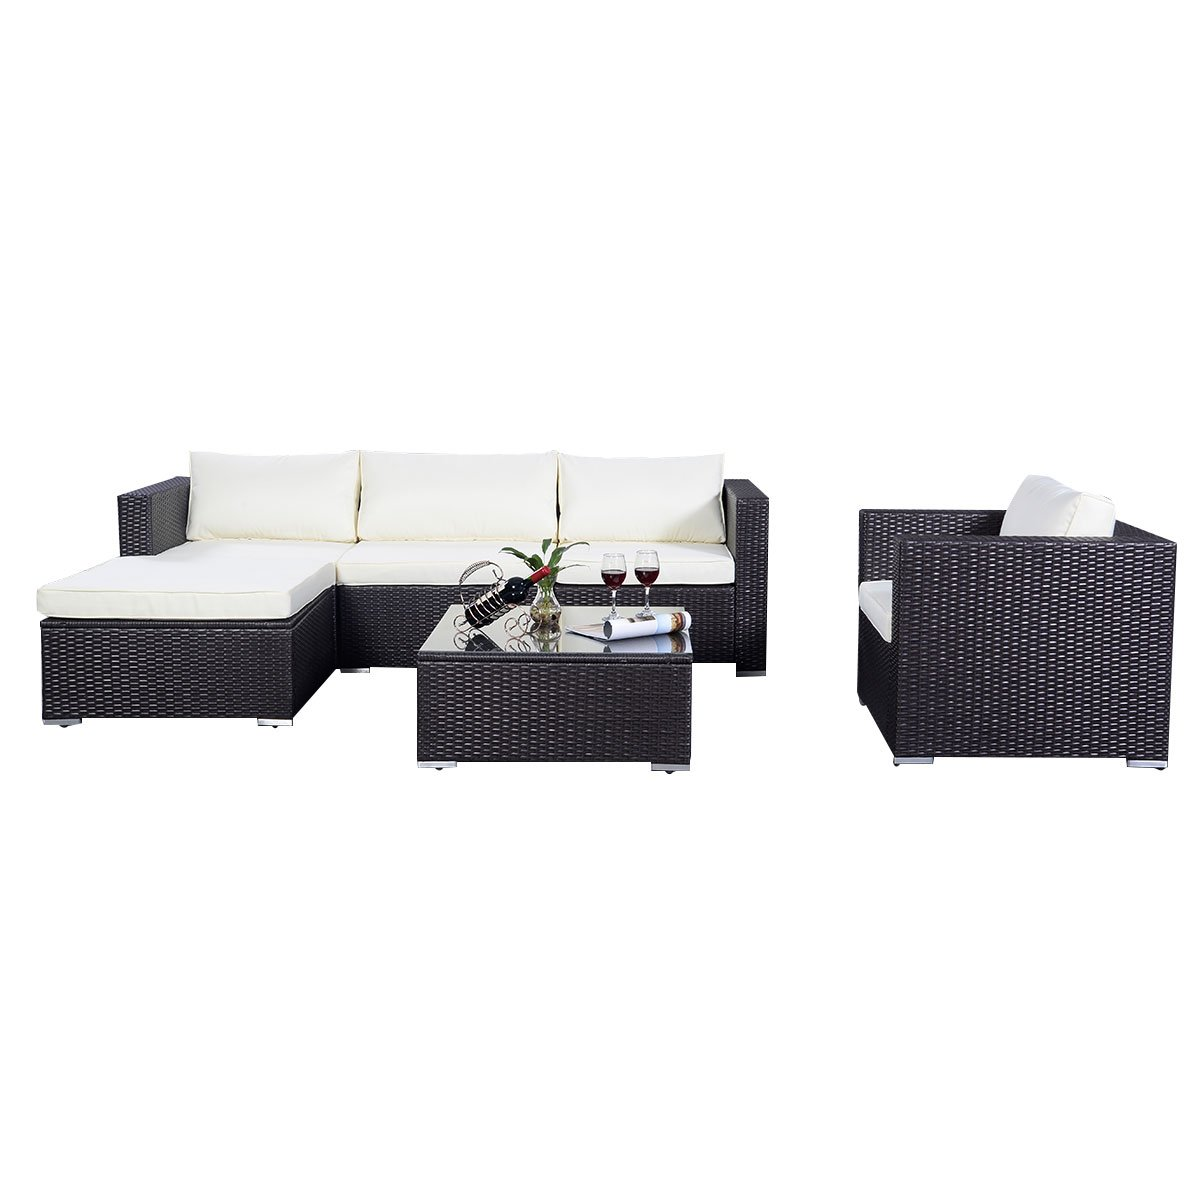 poly ratten gartenm bel 15tlg sofa rattanm bel polyrattan lounge set sitzgruppe gartengarnitur. Black Bedroom Furniture Sets. Home Design Ideas